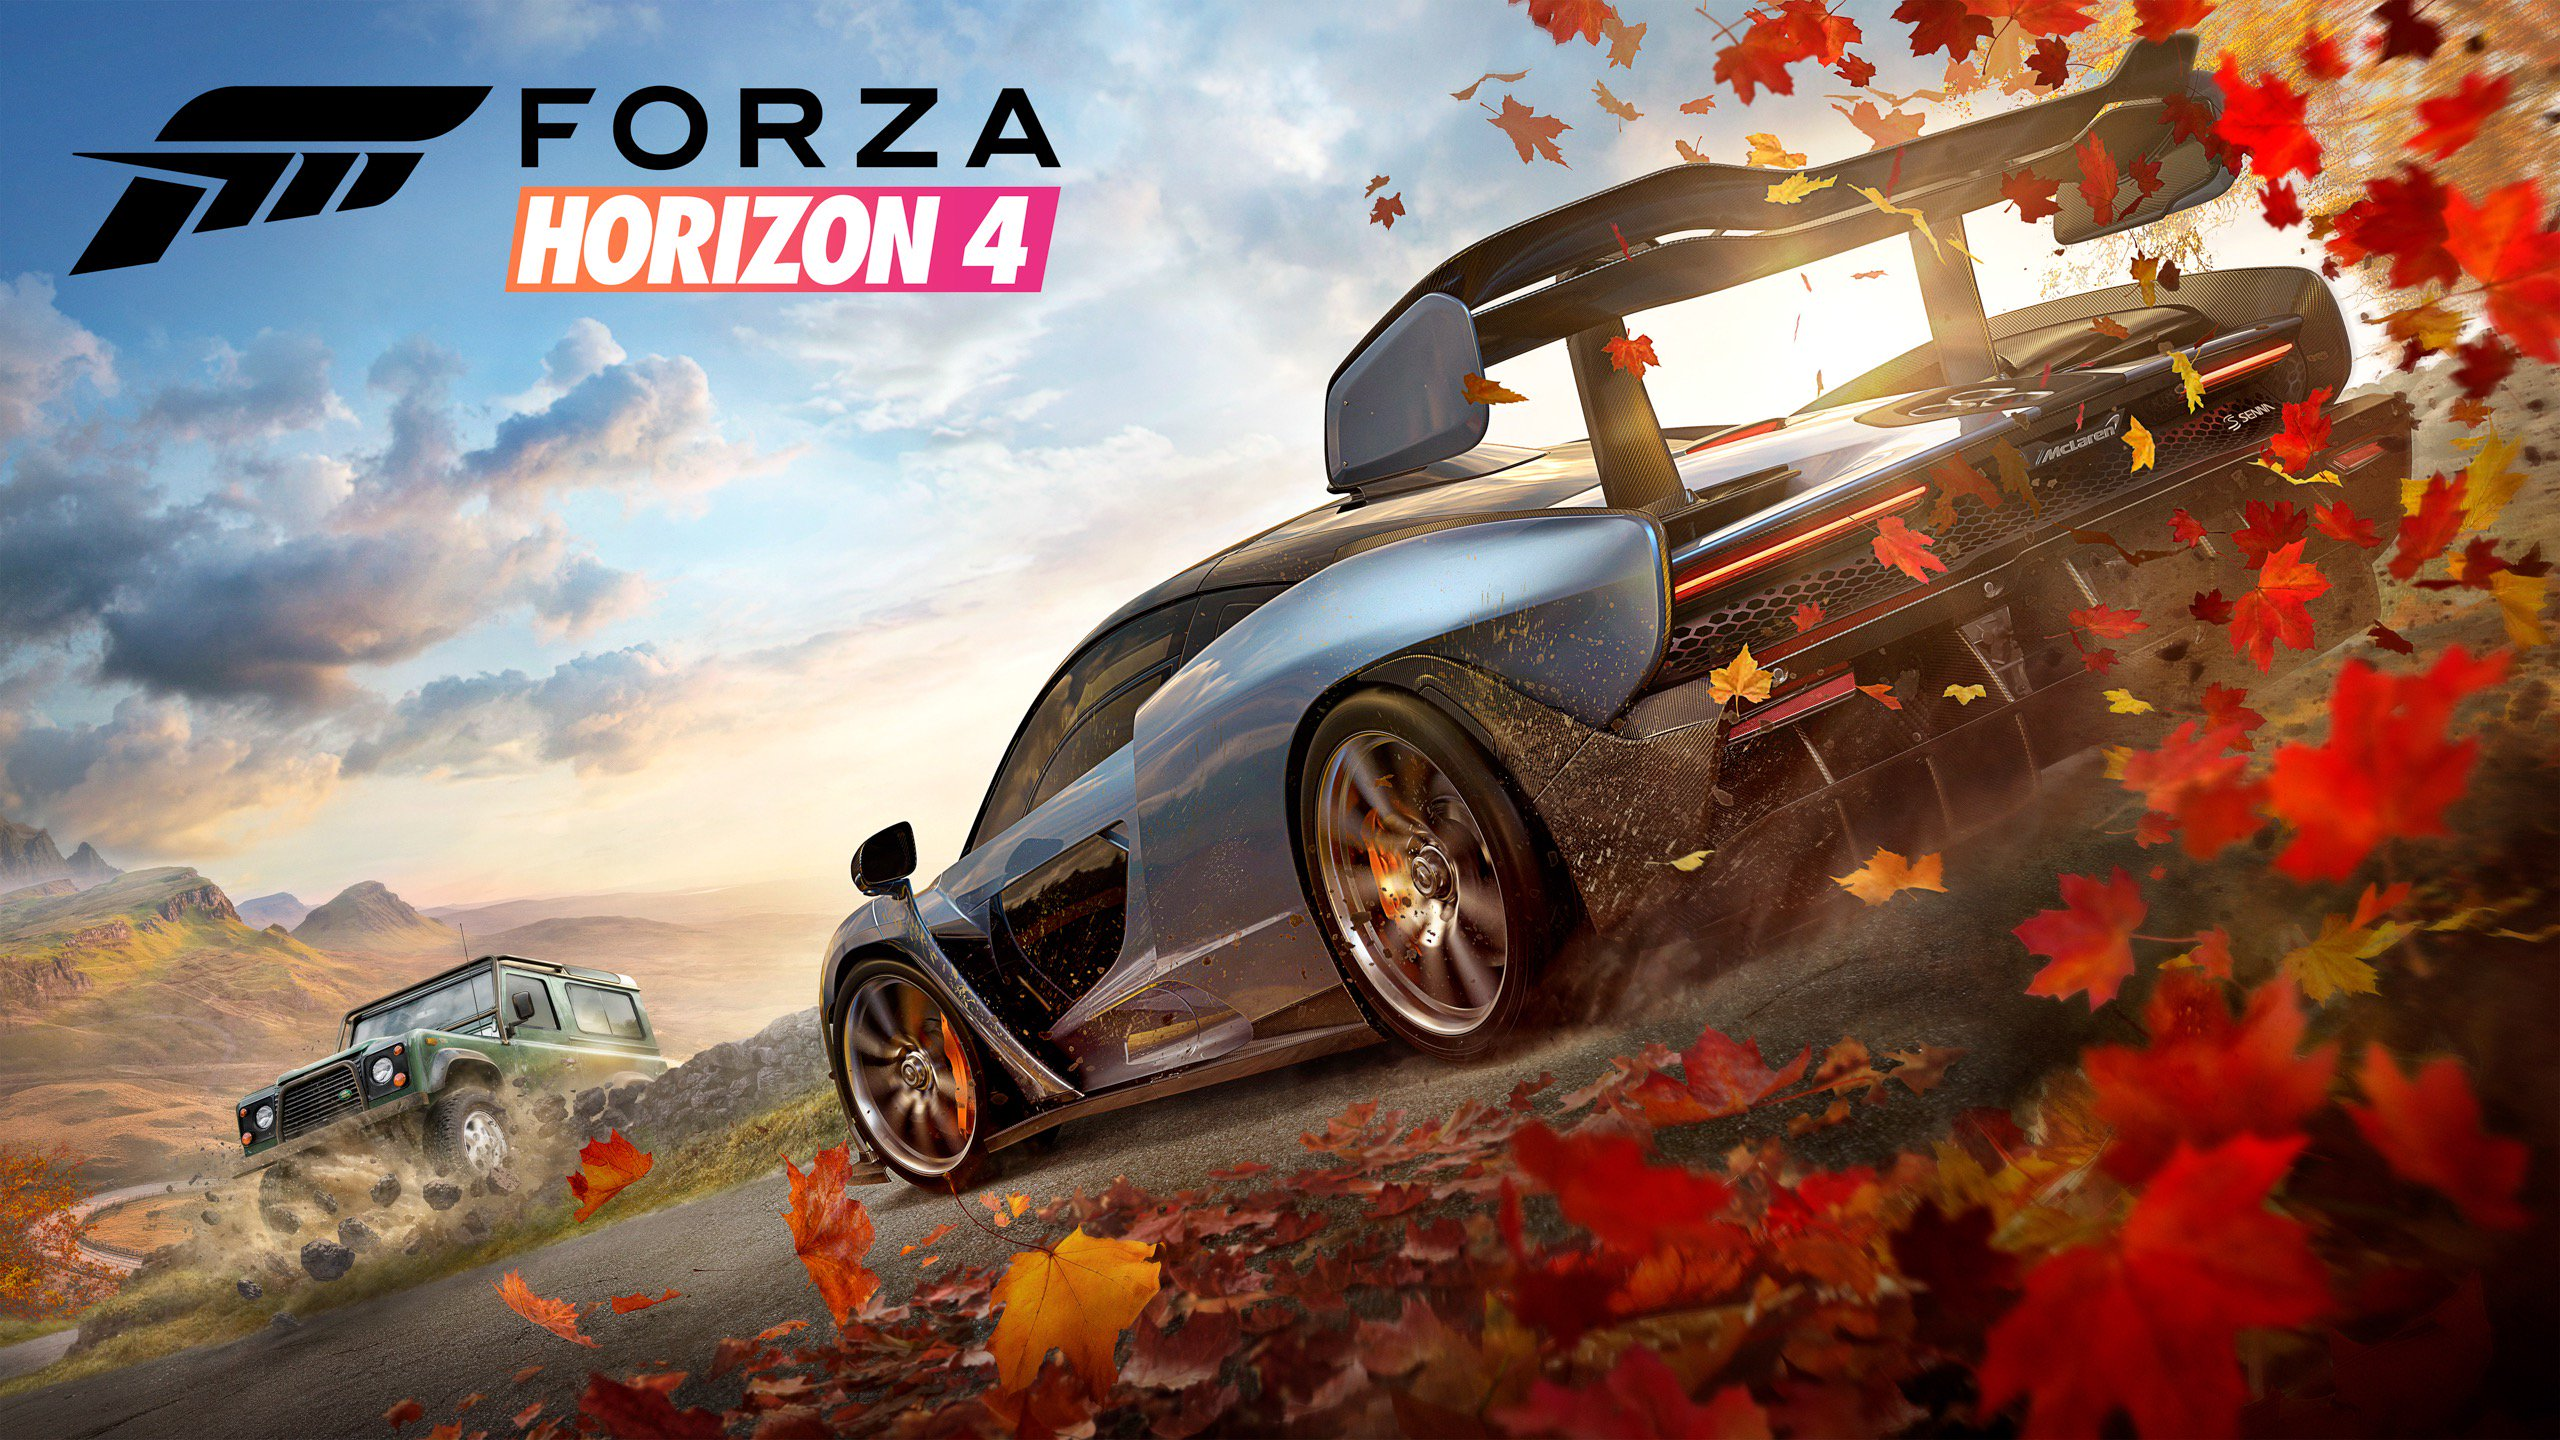 Up To 75 Off The Post Grab Forza edition cars are upgraded cars with game progression boosts in forza horizon 4. godisageek com